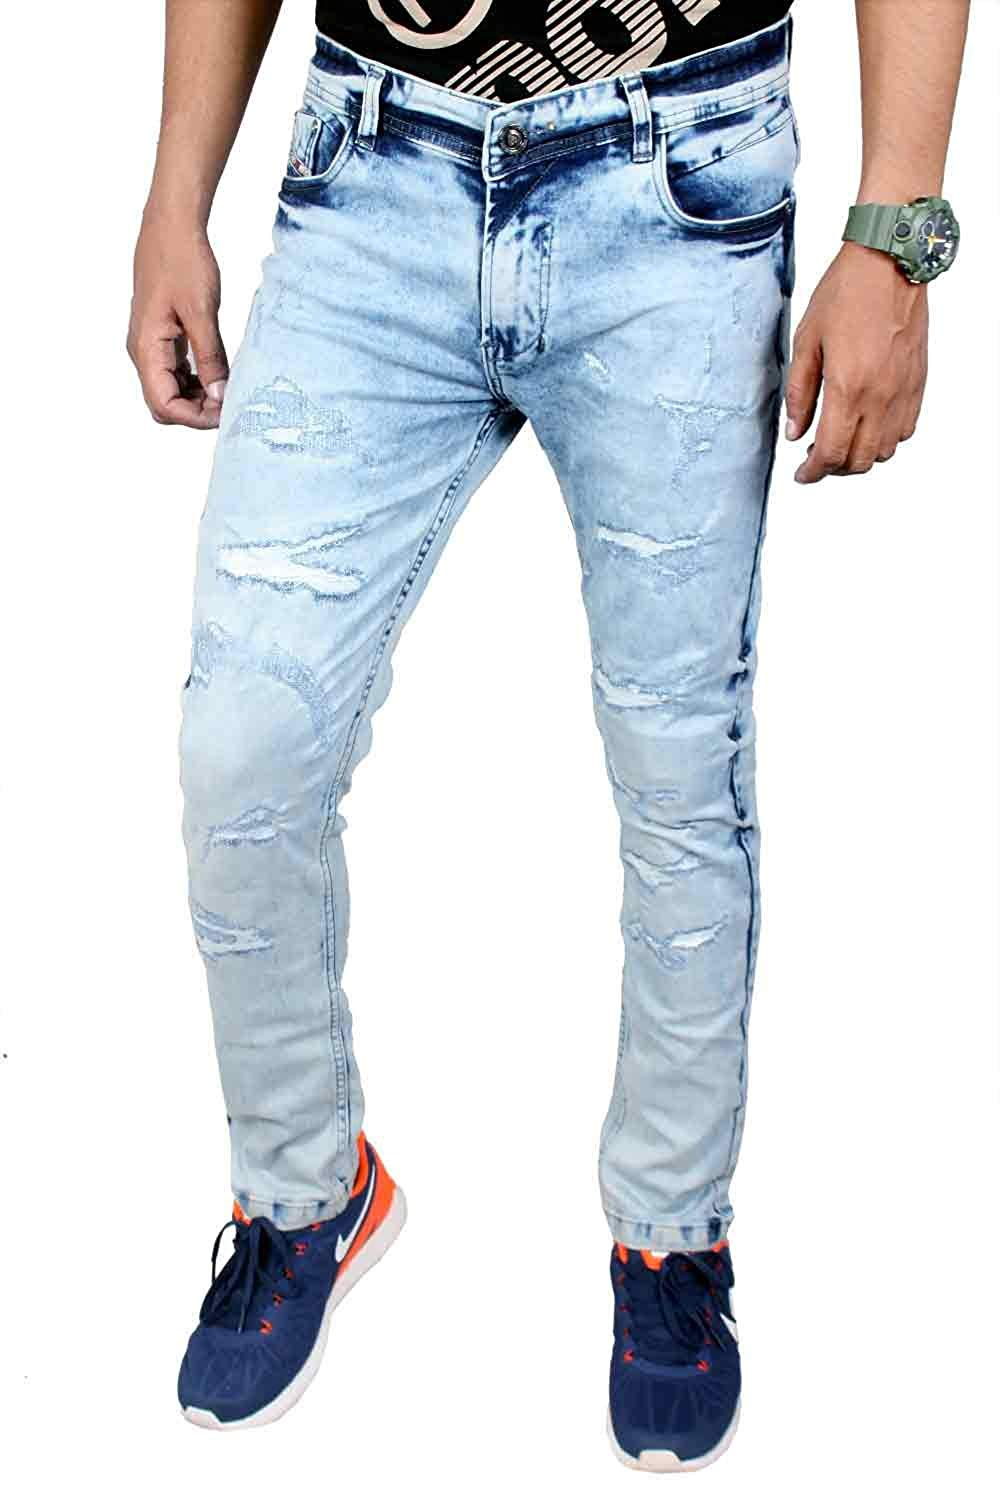 f2d60bee1f8 Get Quotations · Zohran Blue Perfume Wash Stretch Biker Cotton Jeans Pants  Made in India Sty-3BA